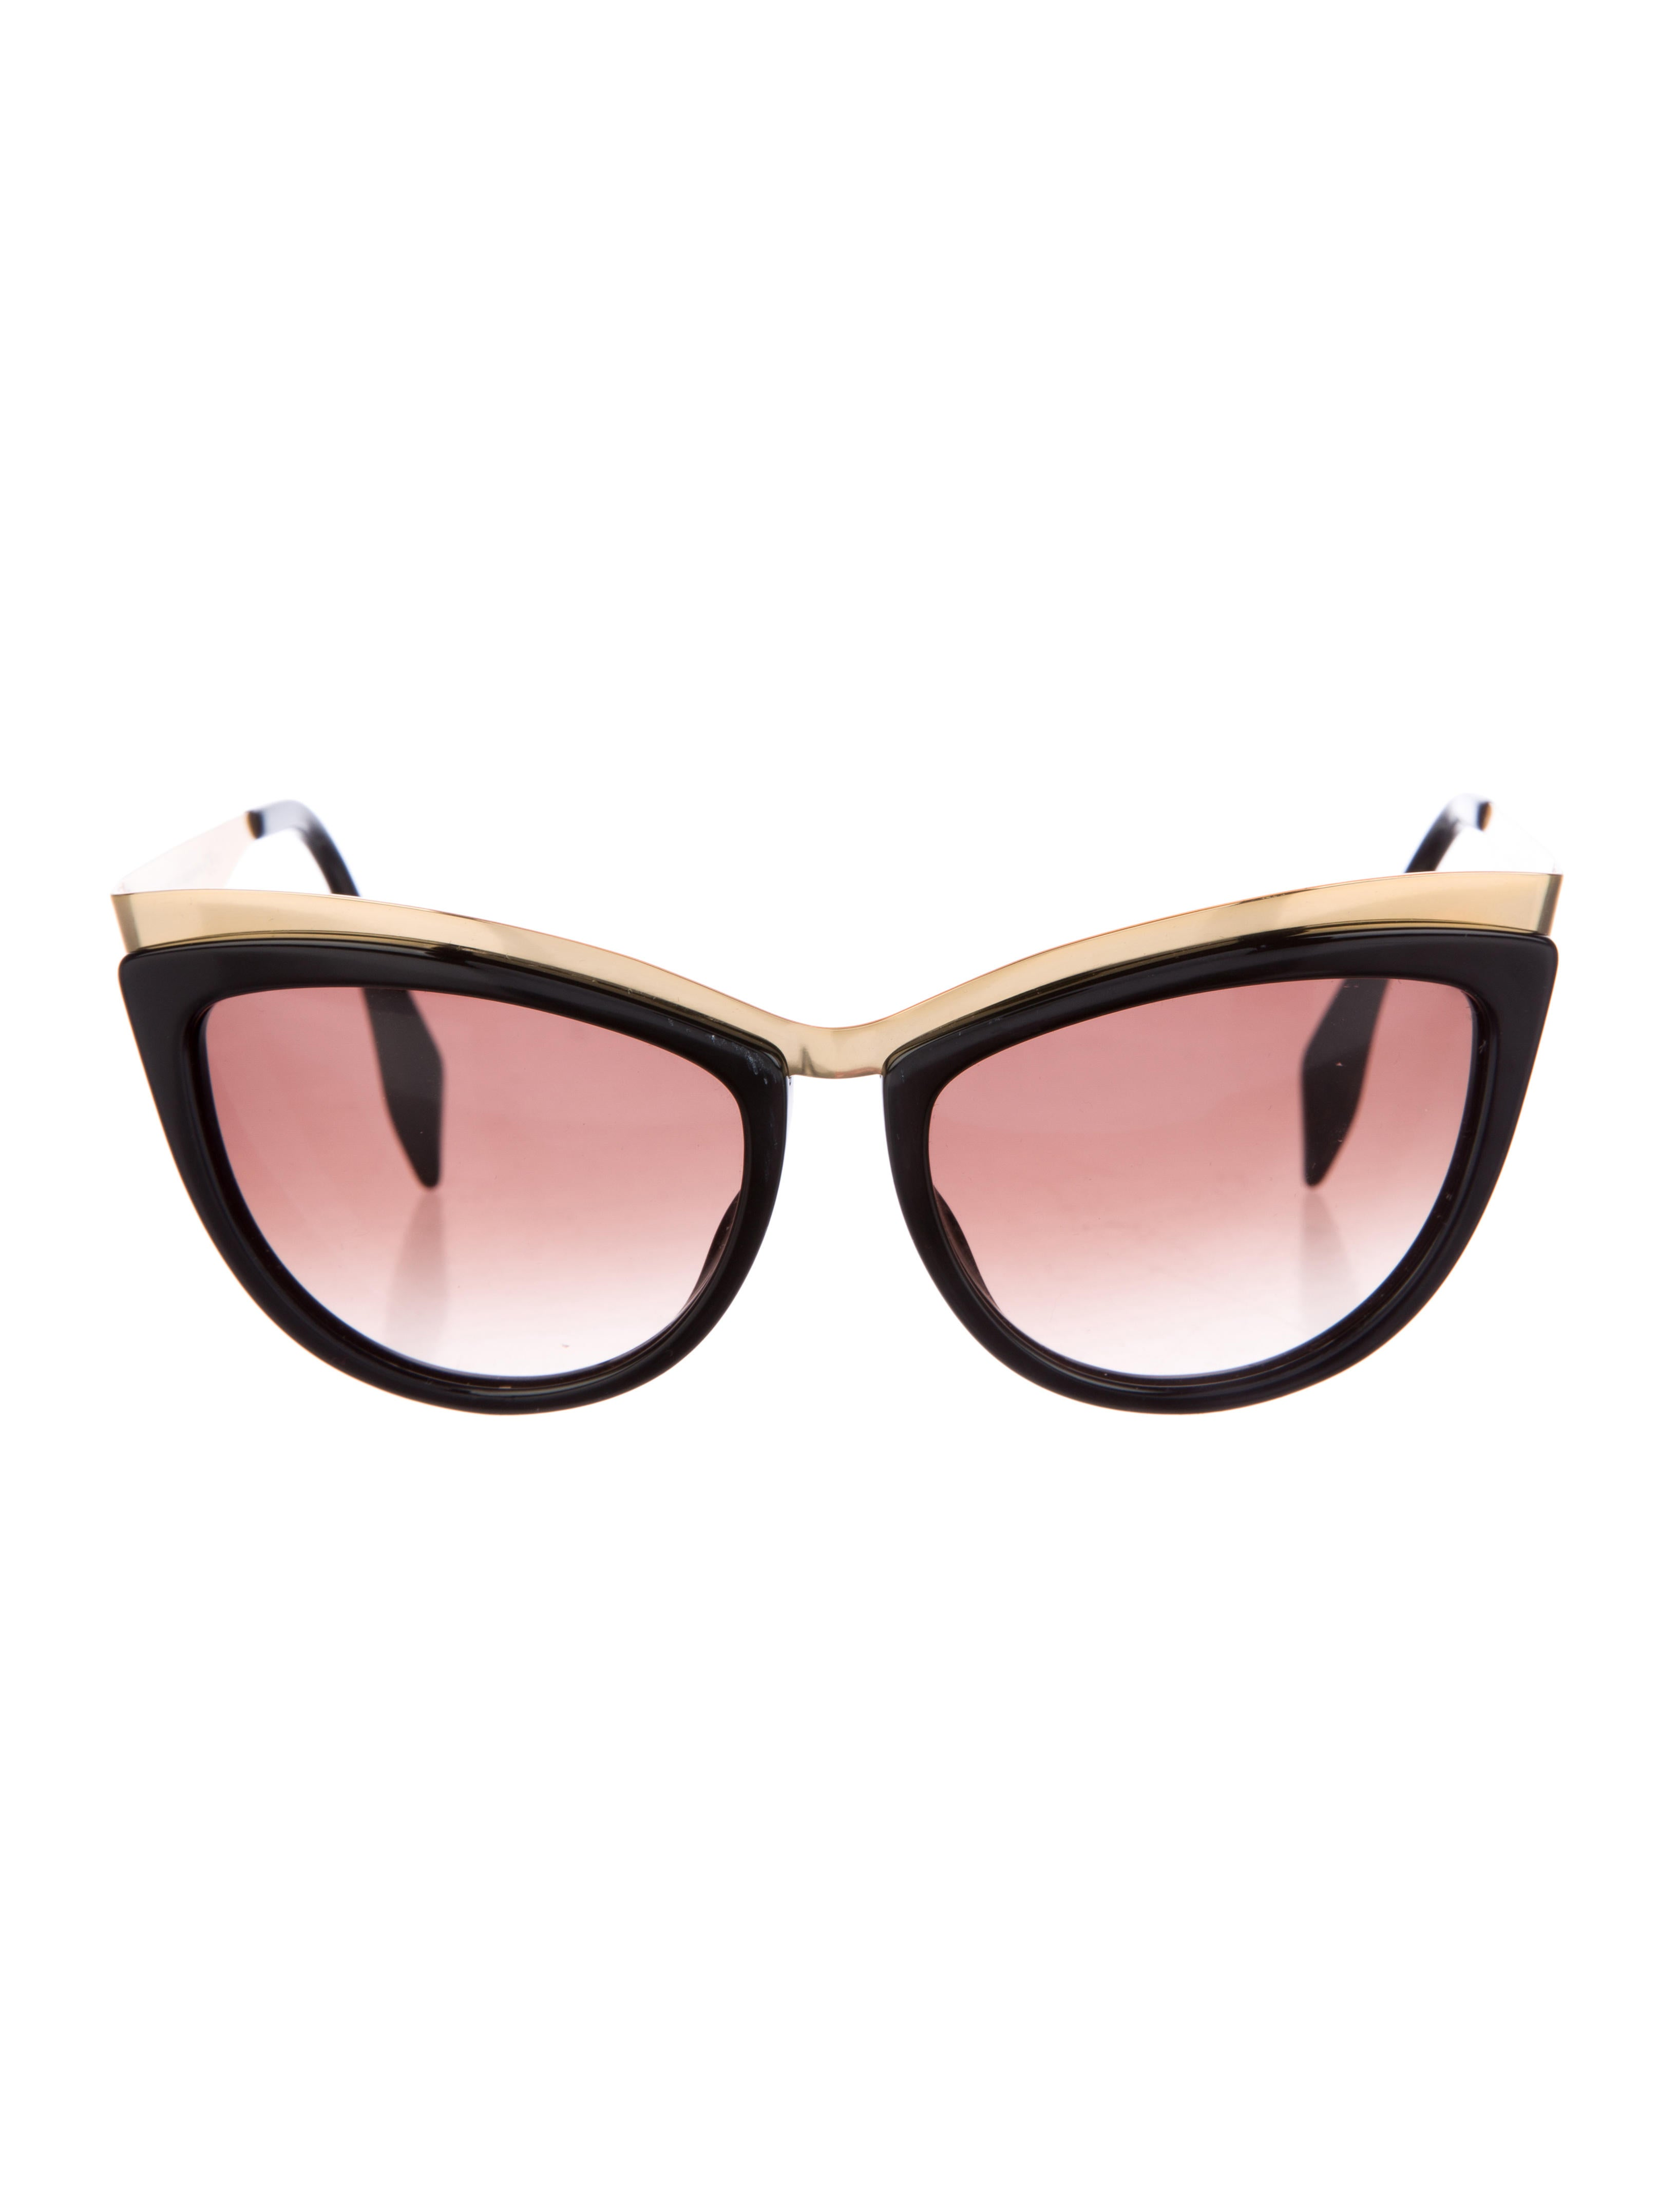 Alexander Mcqueen Cateye Sunglasses  alexander mcqueen cat eye tinted sunglasses accessories